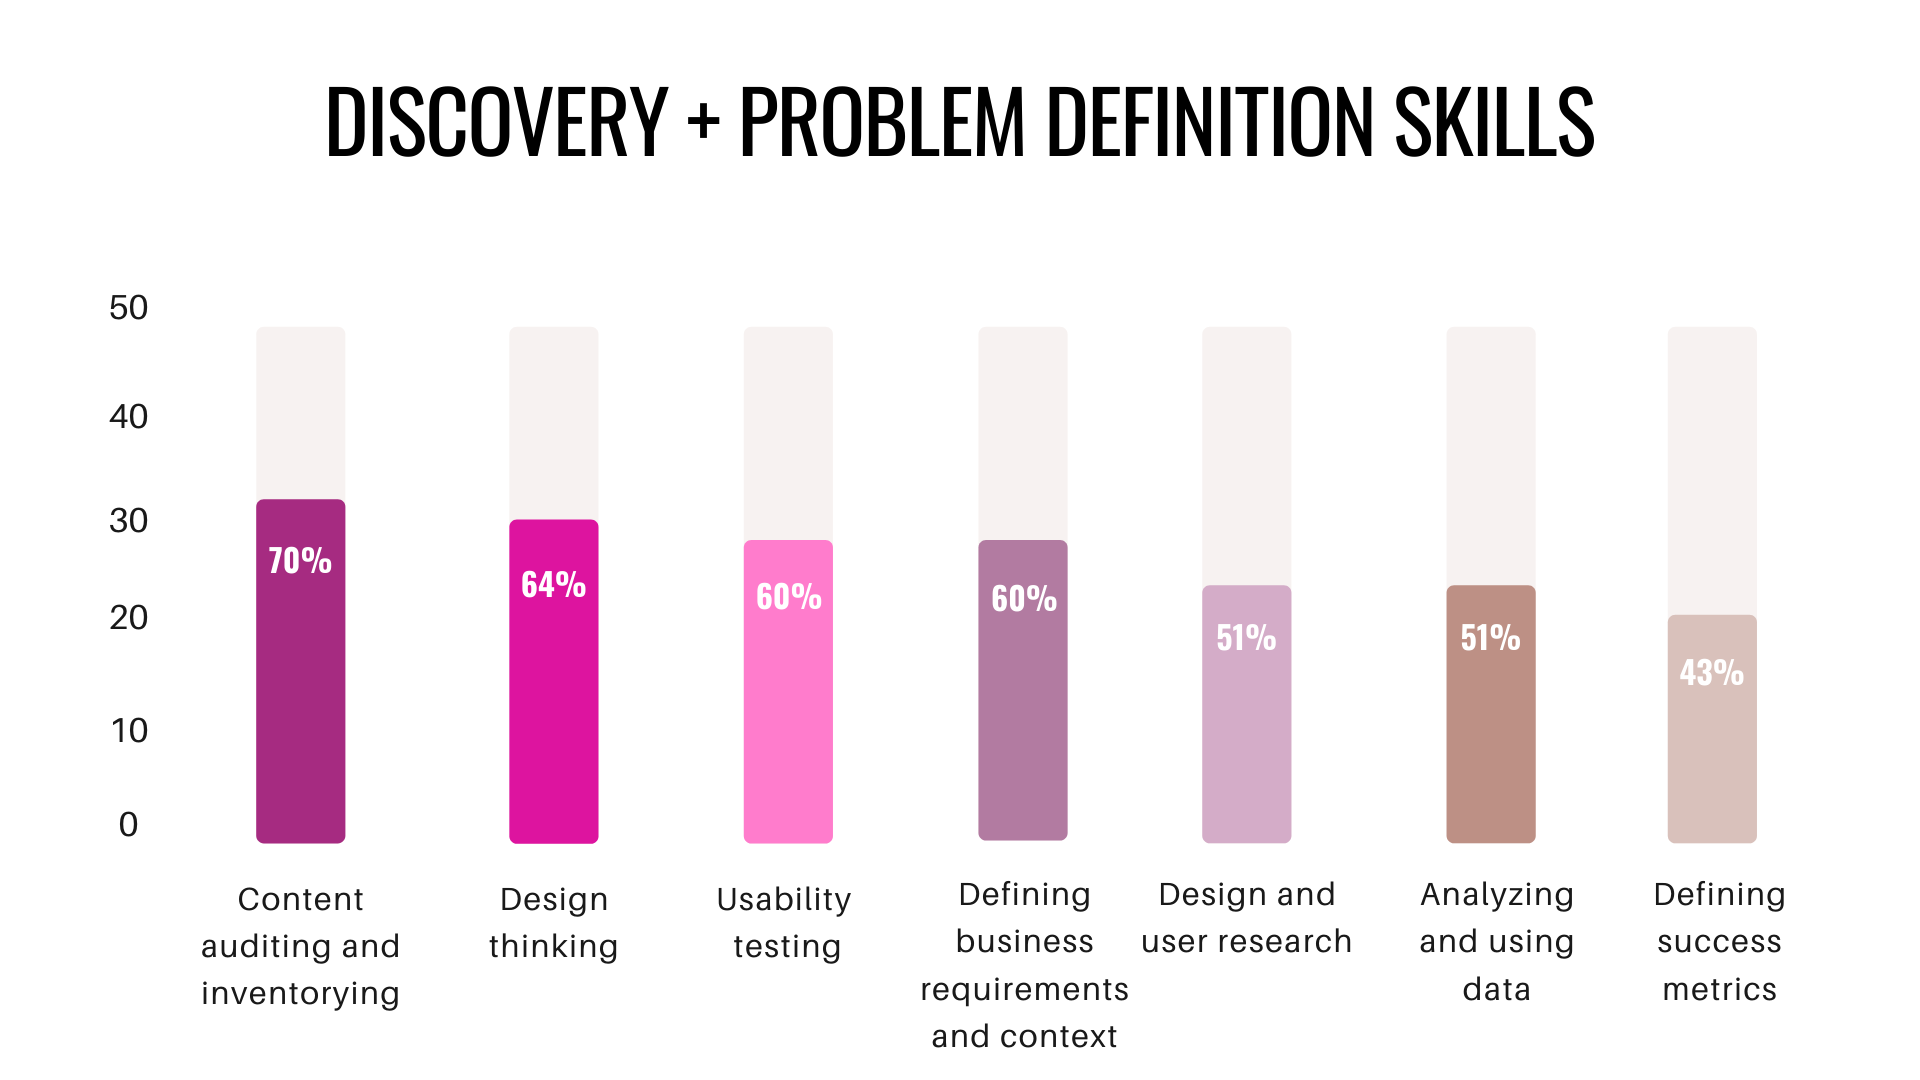 Bar graph of skills used for discovery and problem definition.